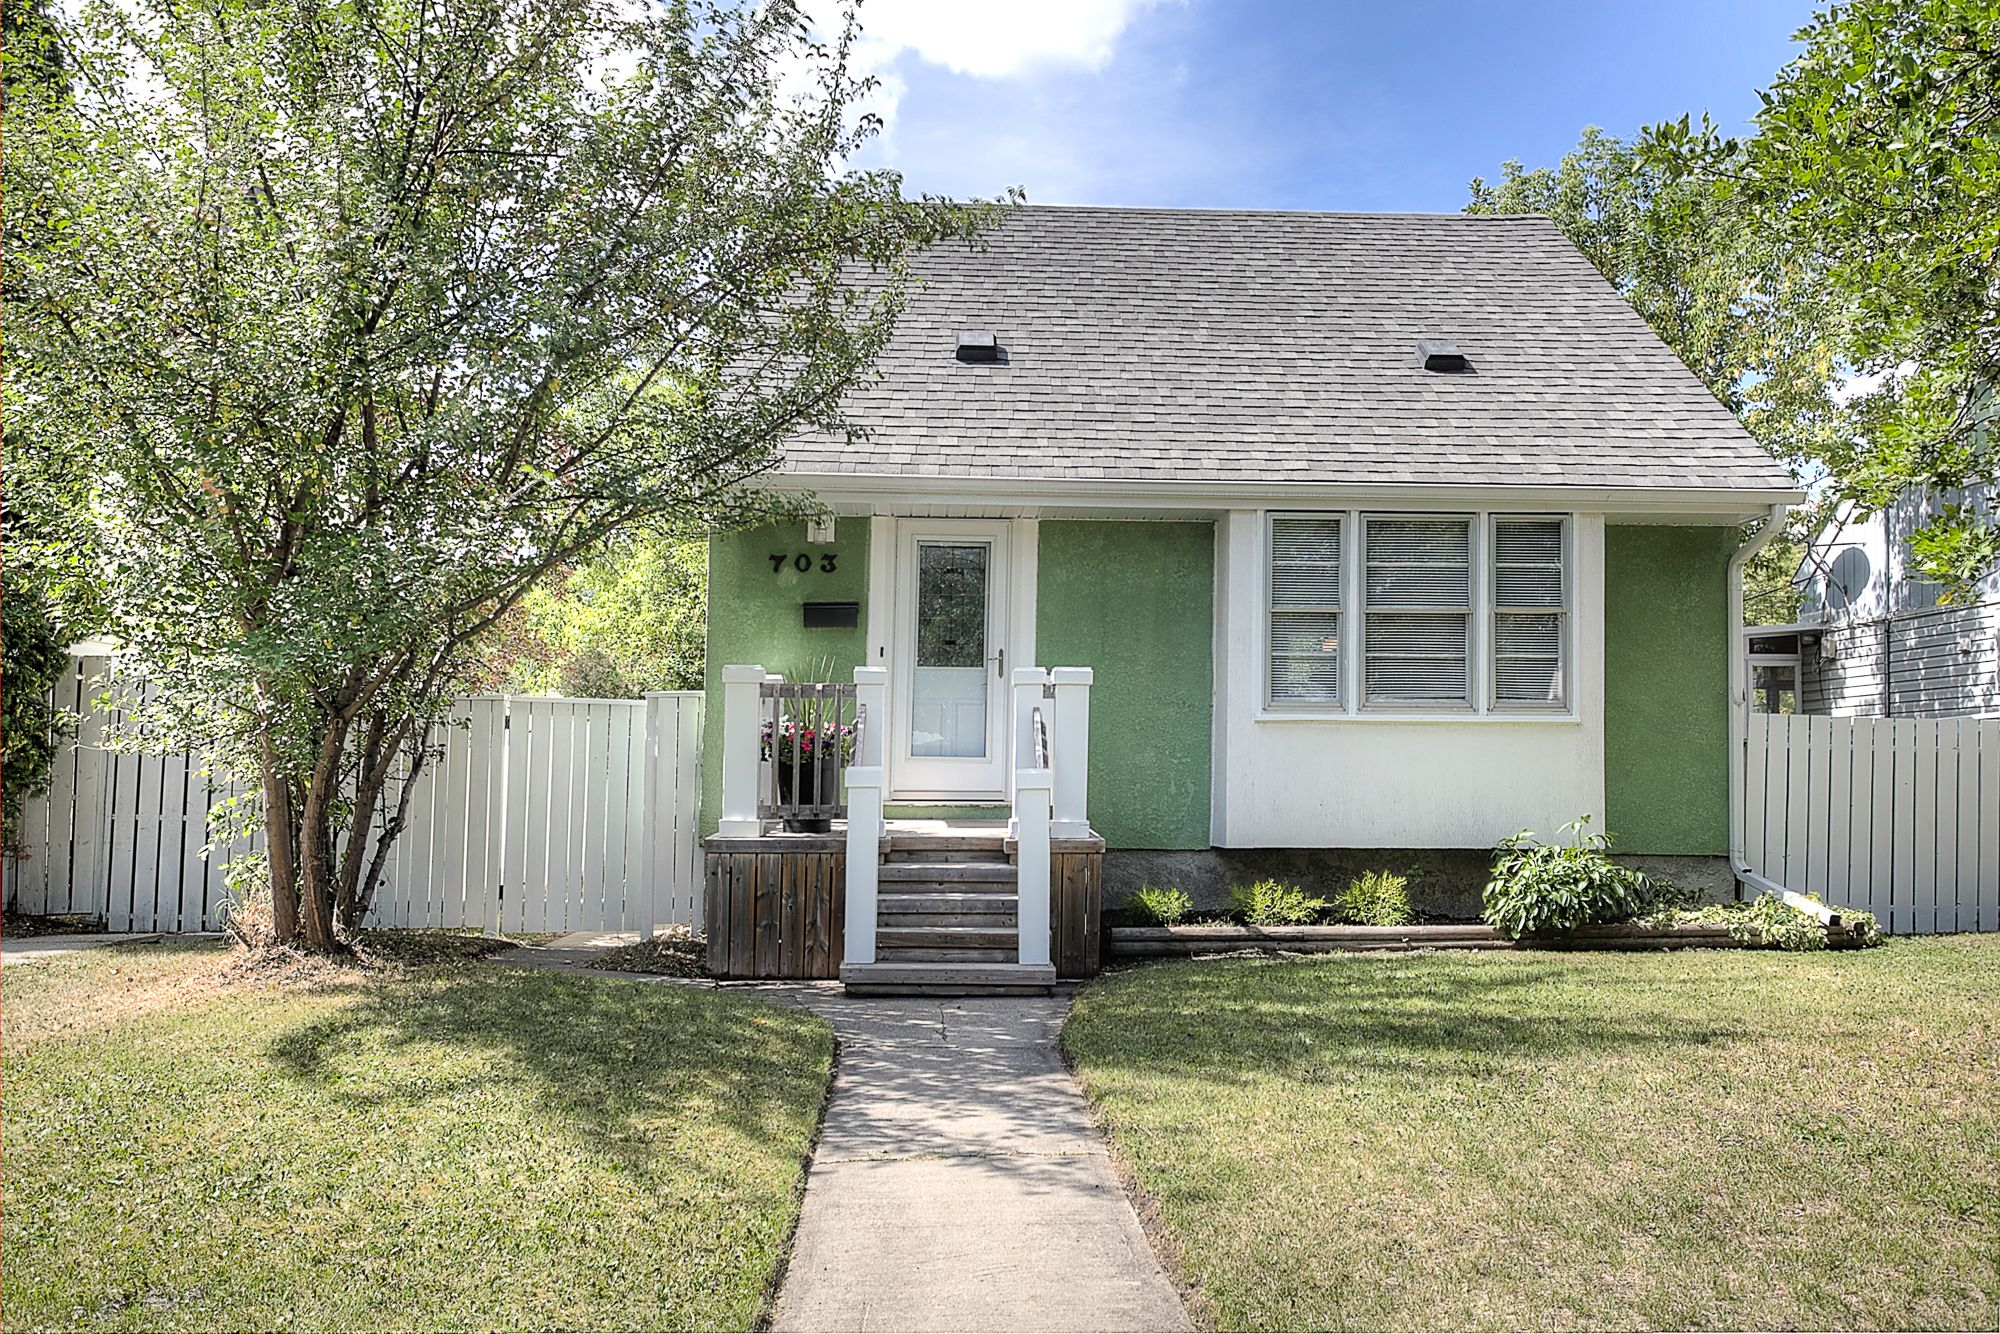 Main Photo: 703 Cambridge Avenue in Winnipeg: River Heights Single Family Detached for sale (1D)  : MLS®# 1823144